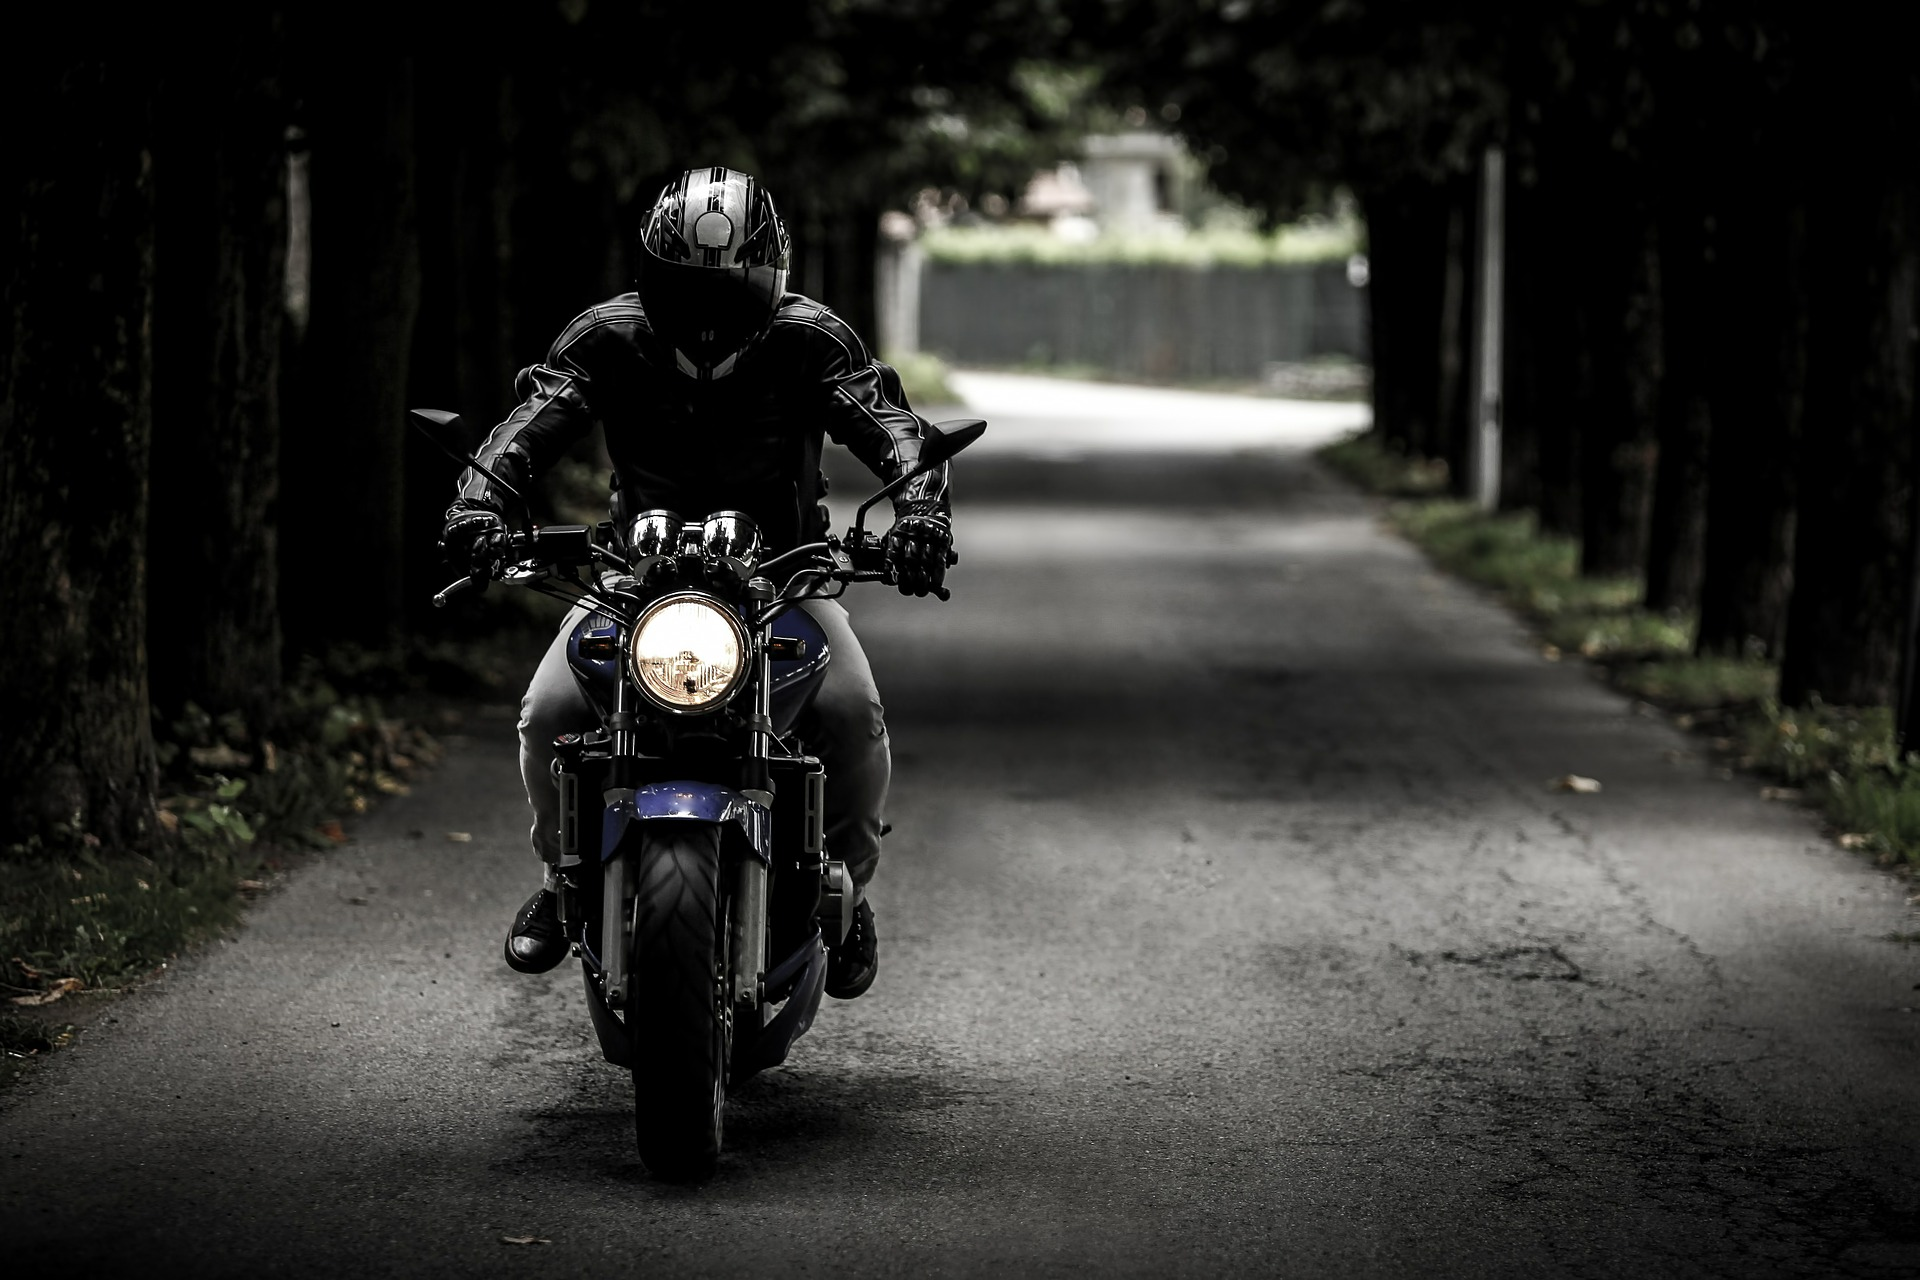 Why I Ride Motorcycles Wednesday